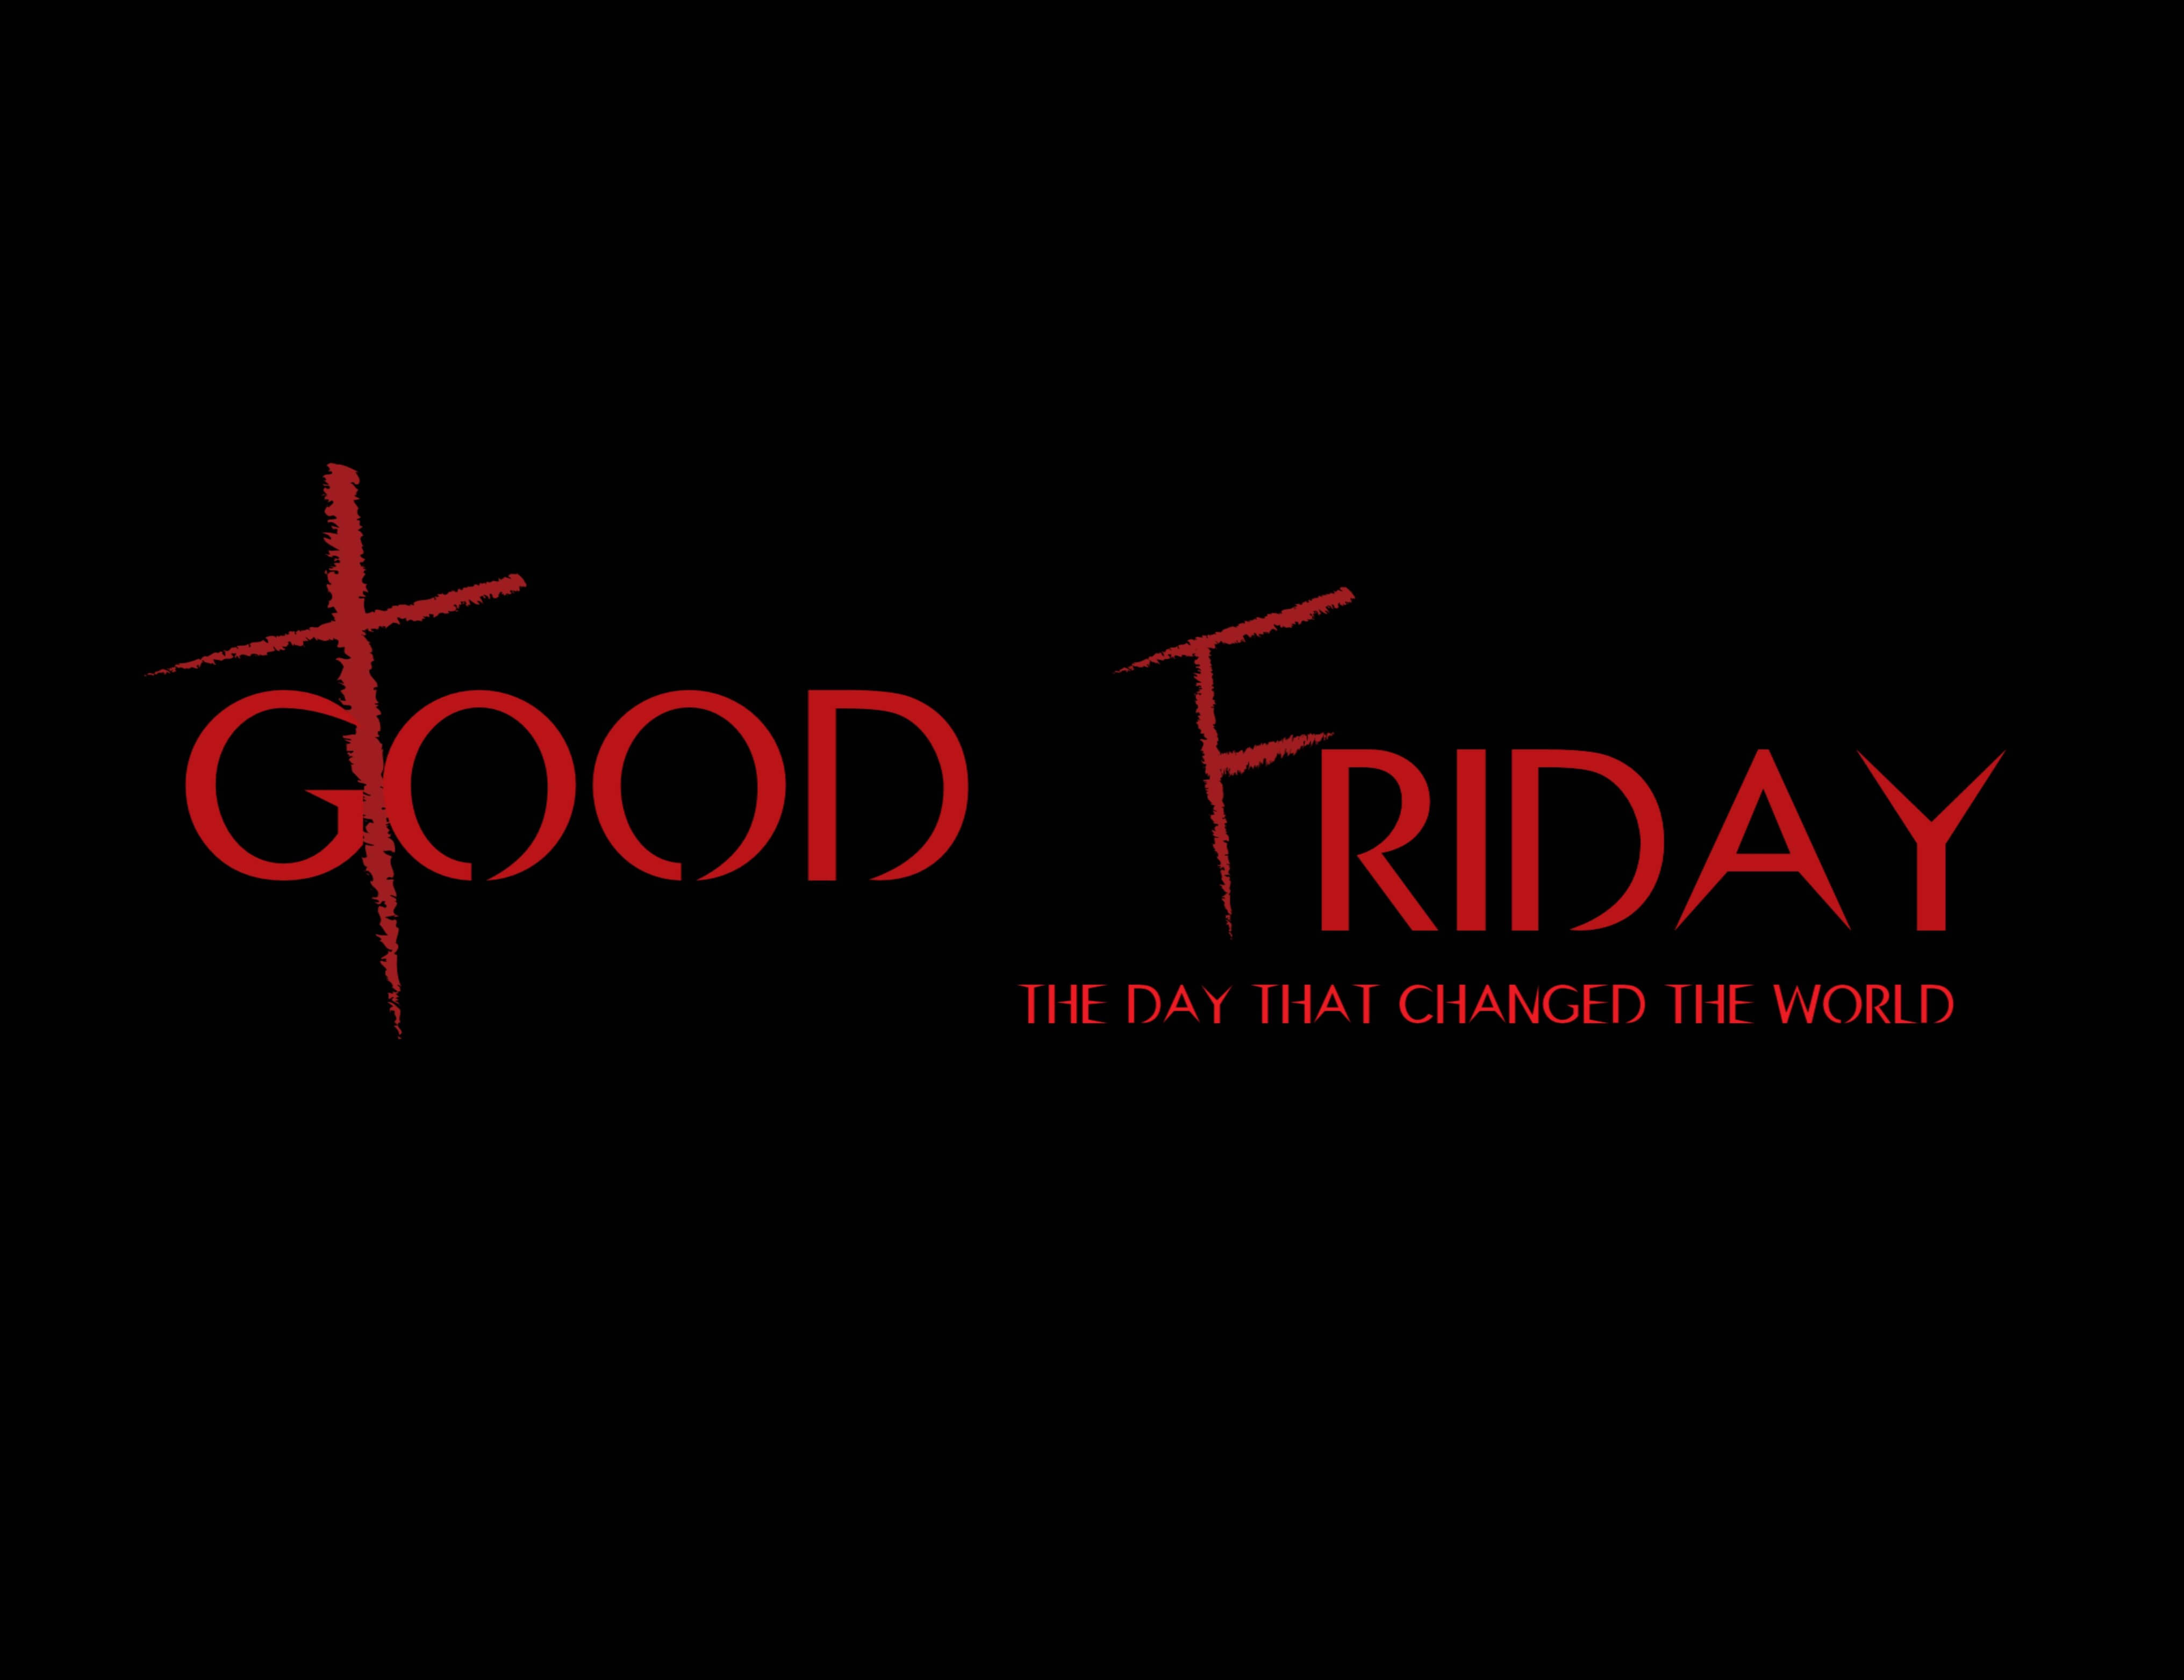 Good Friday Cross Free Hd Wallpaper